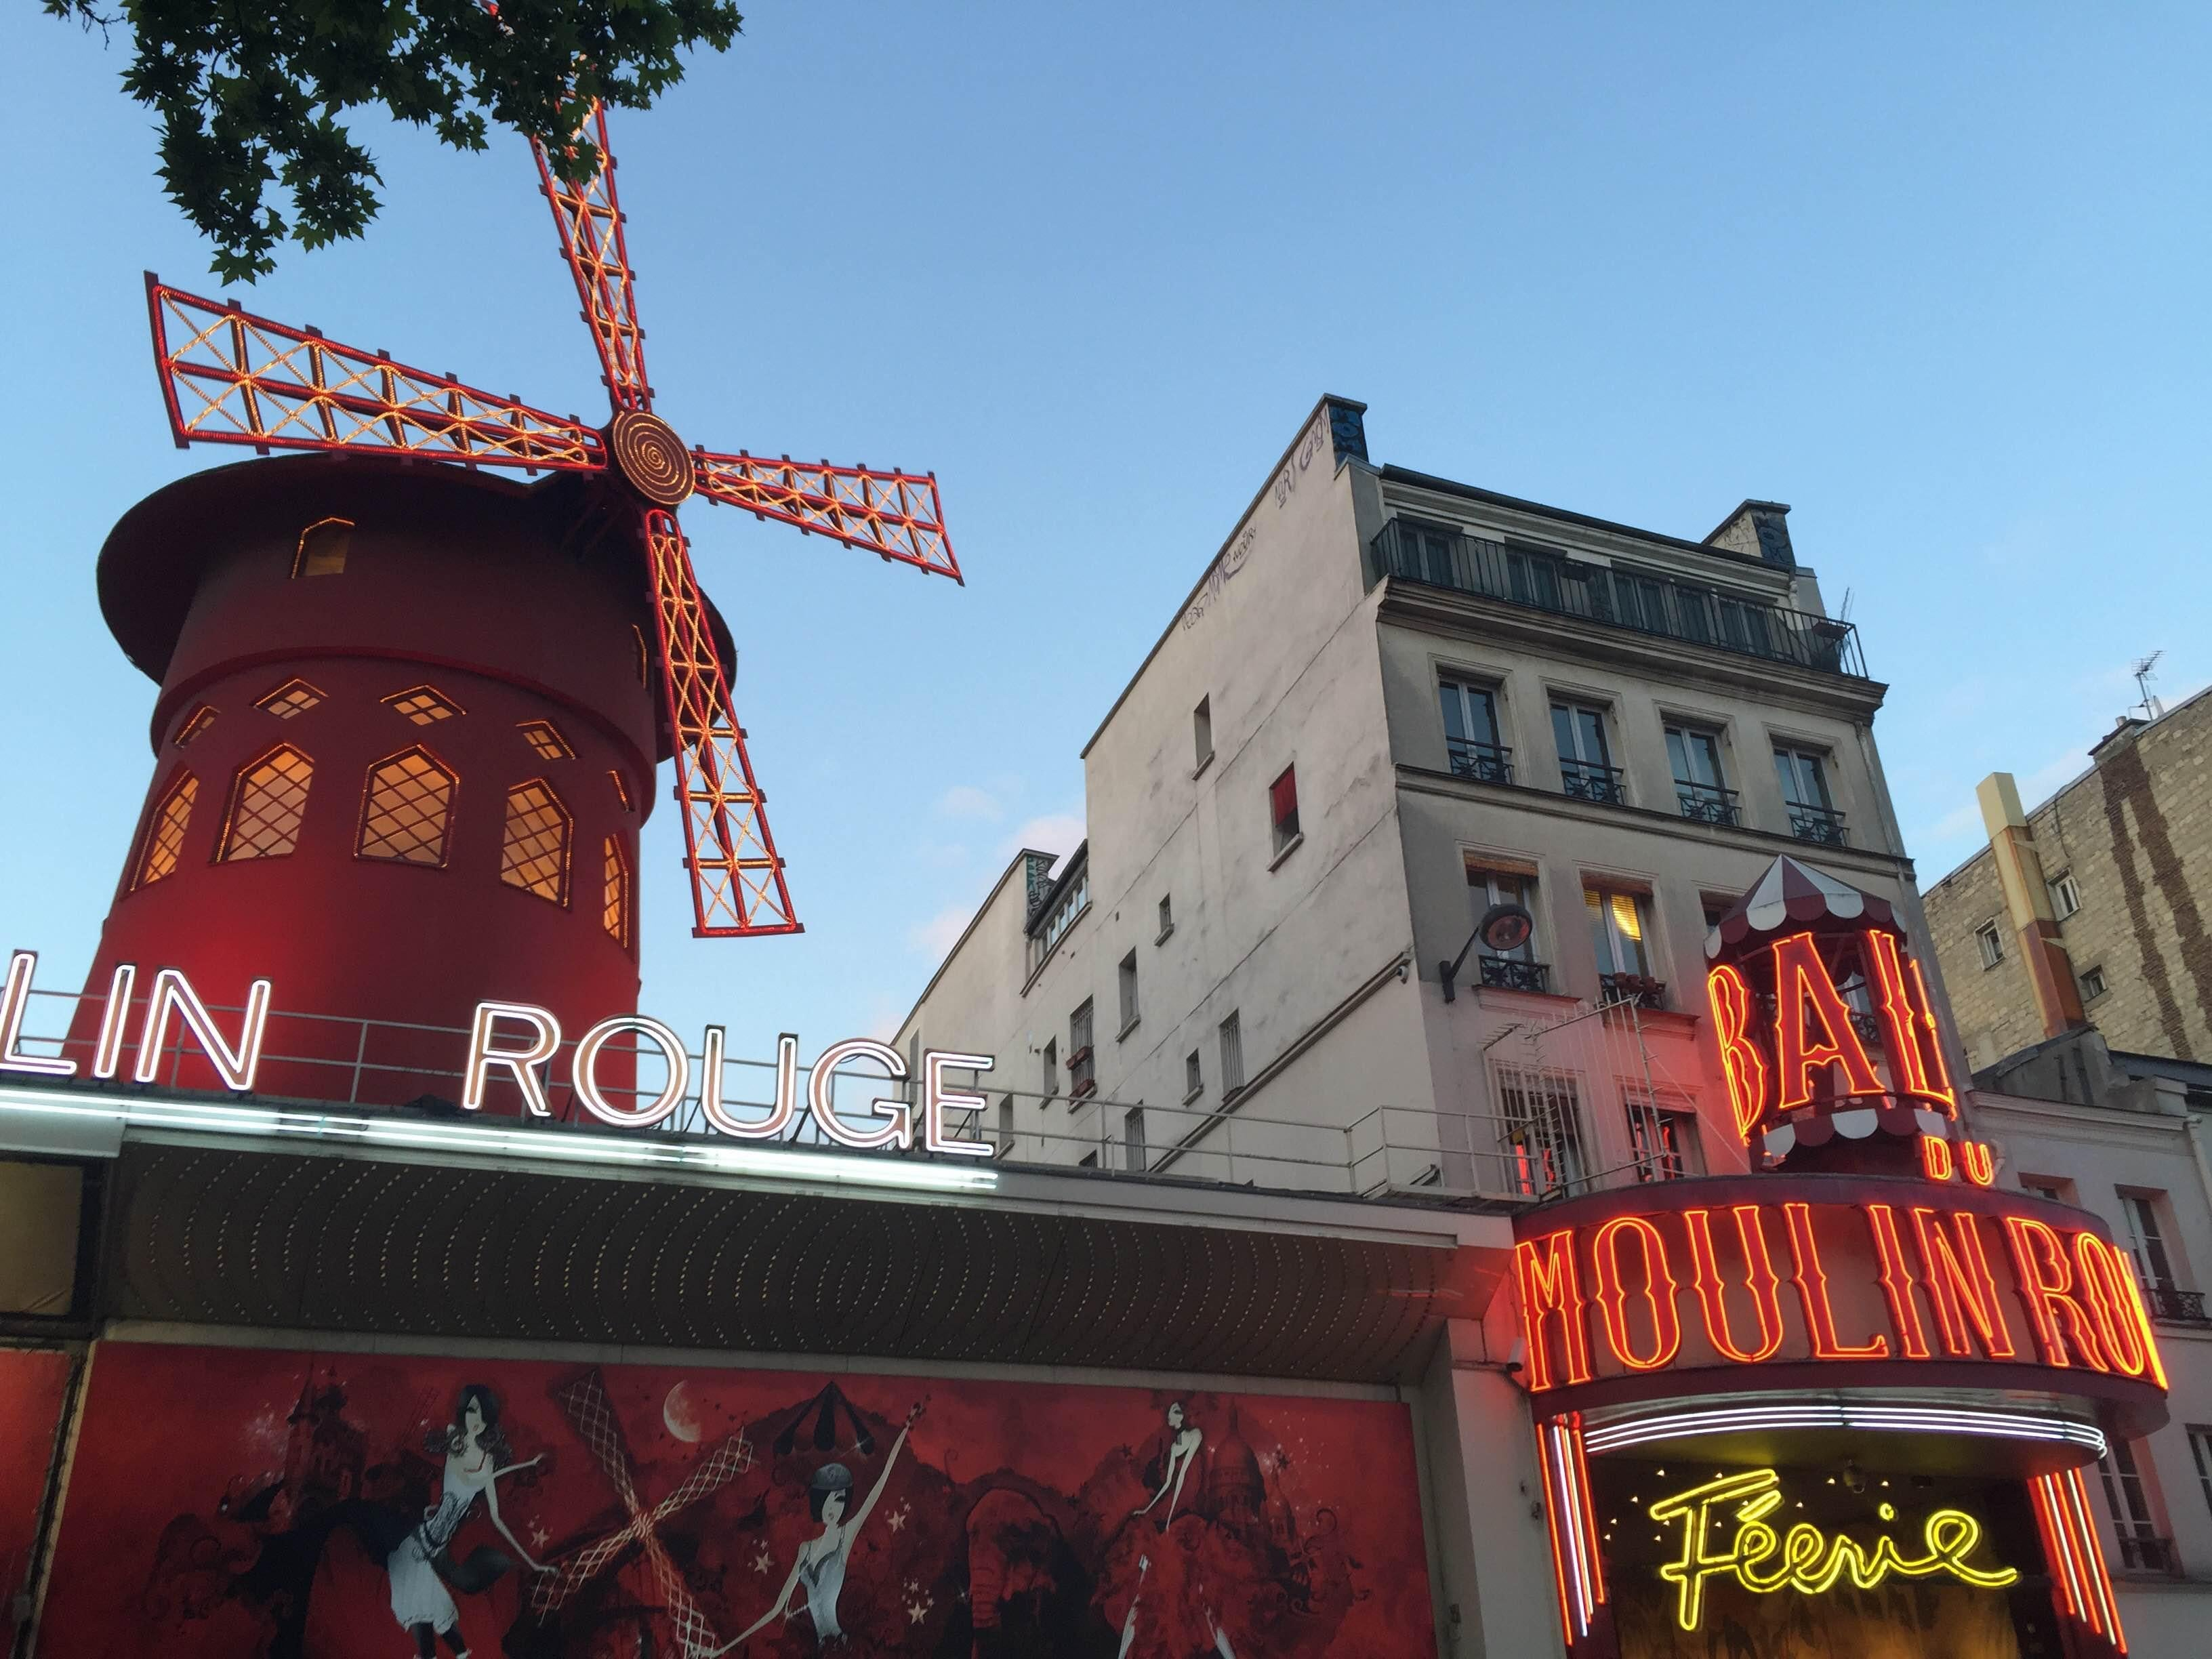 Templo en Moulin Rouge